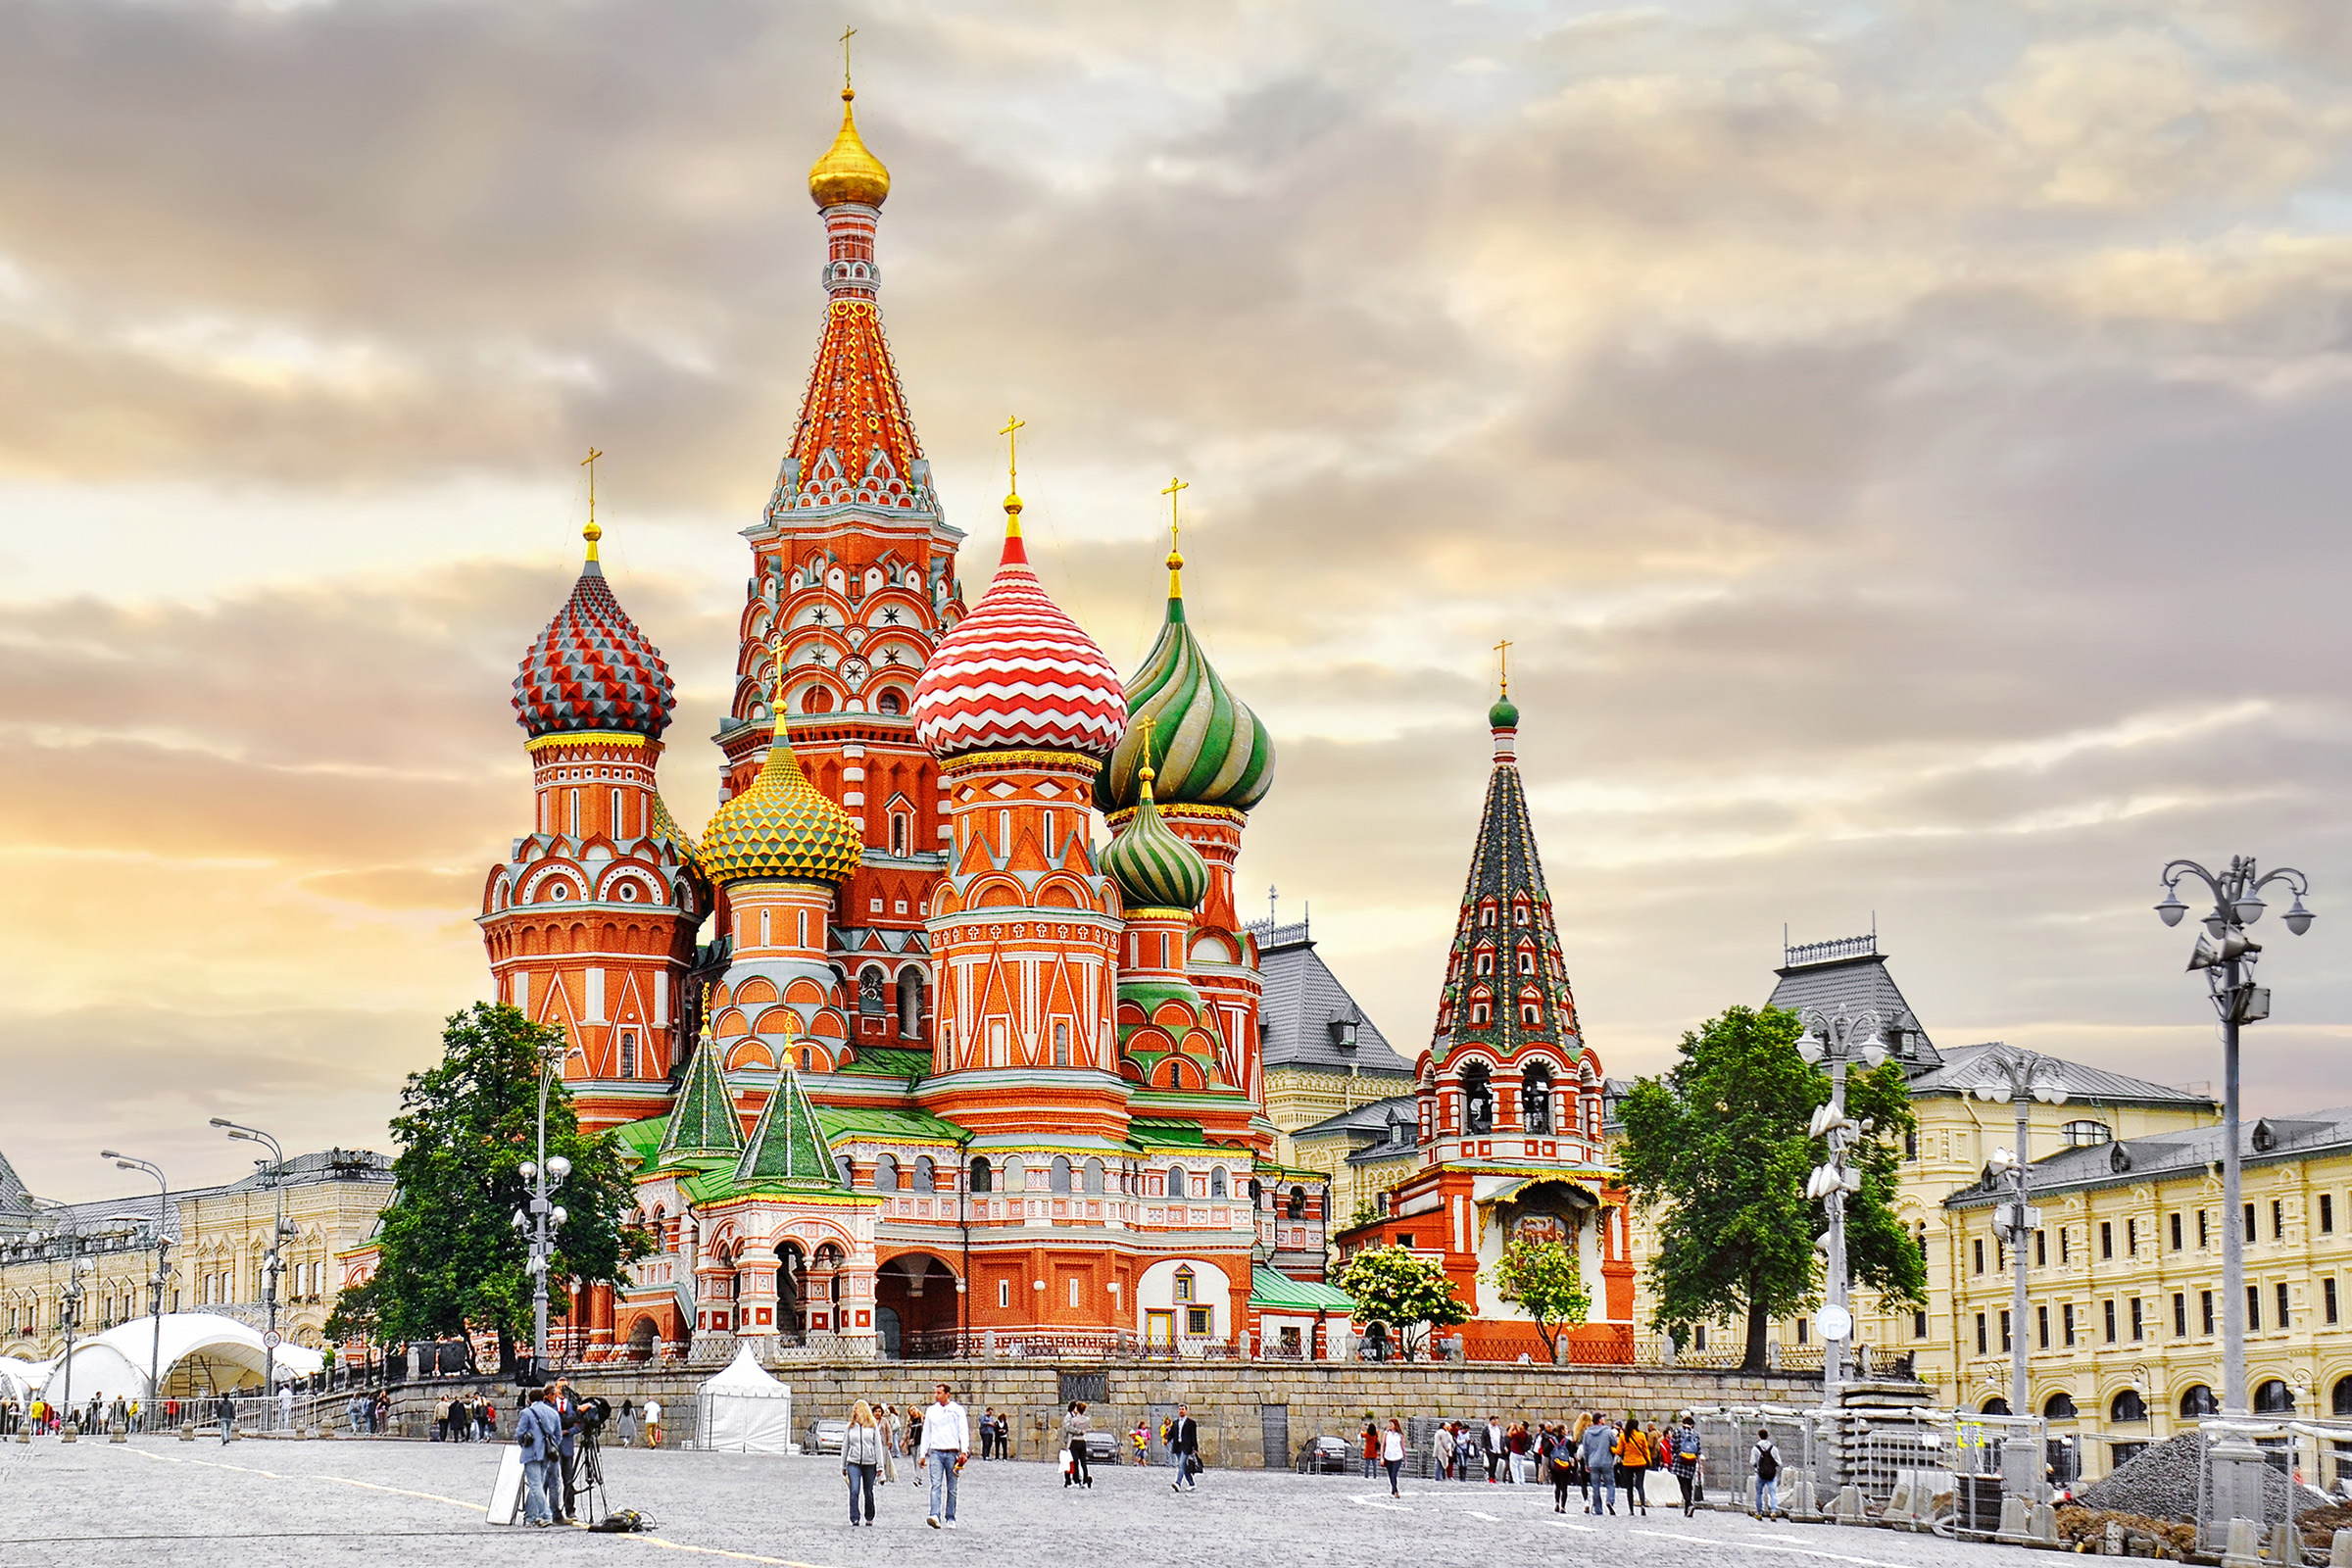 RussiaTour Packages - Book honeymoon ,family,adventure tour packages to Russia Travel Knits